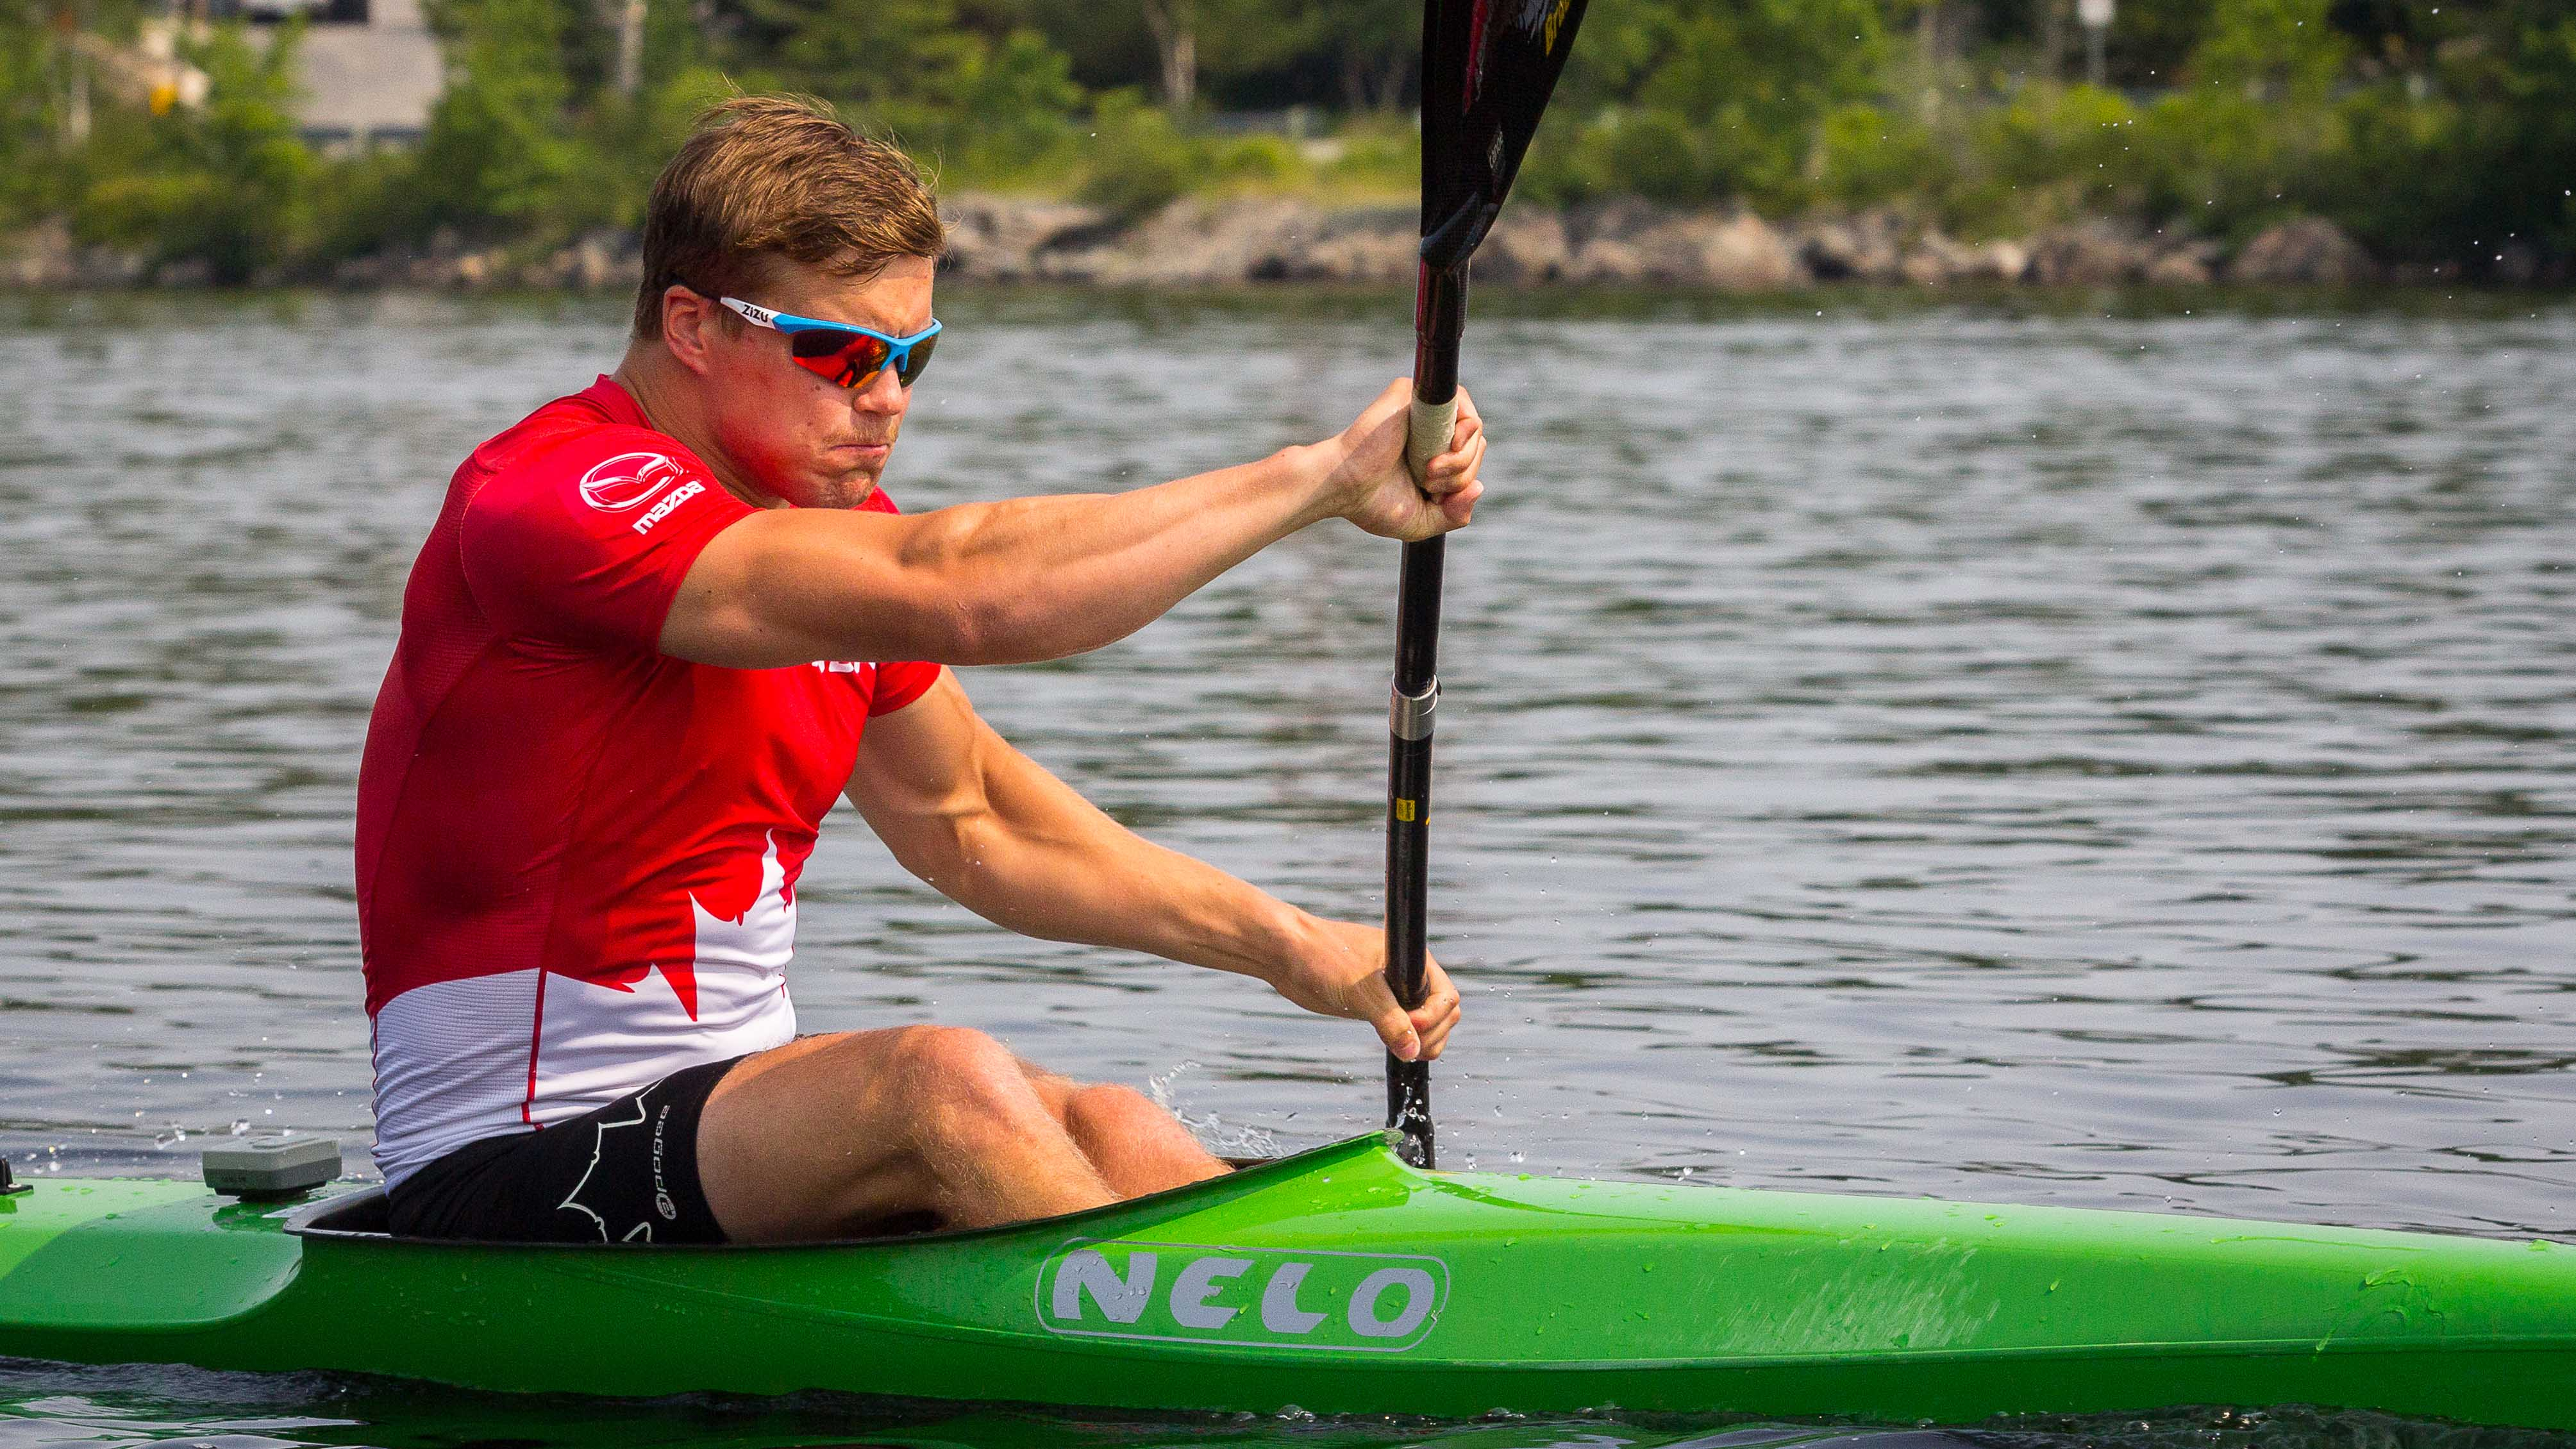 Alex Scott takes to the water in preparation for the 2016 season